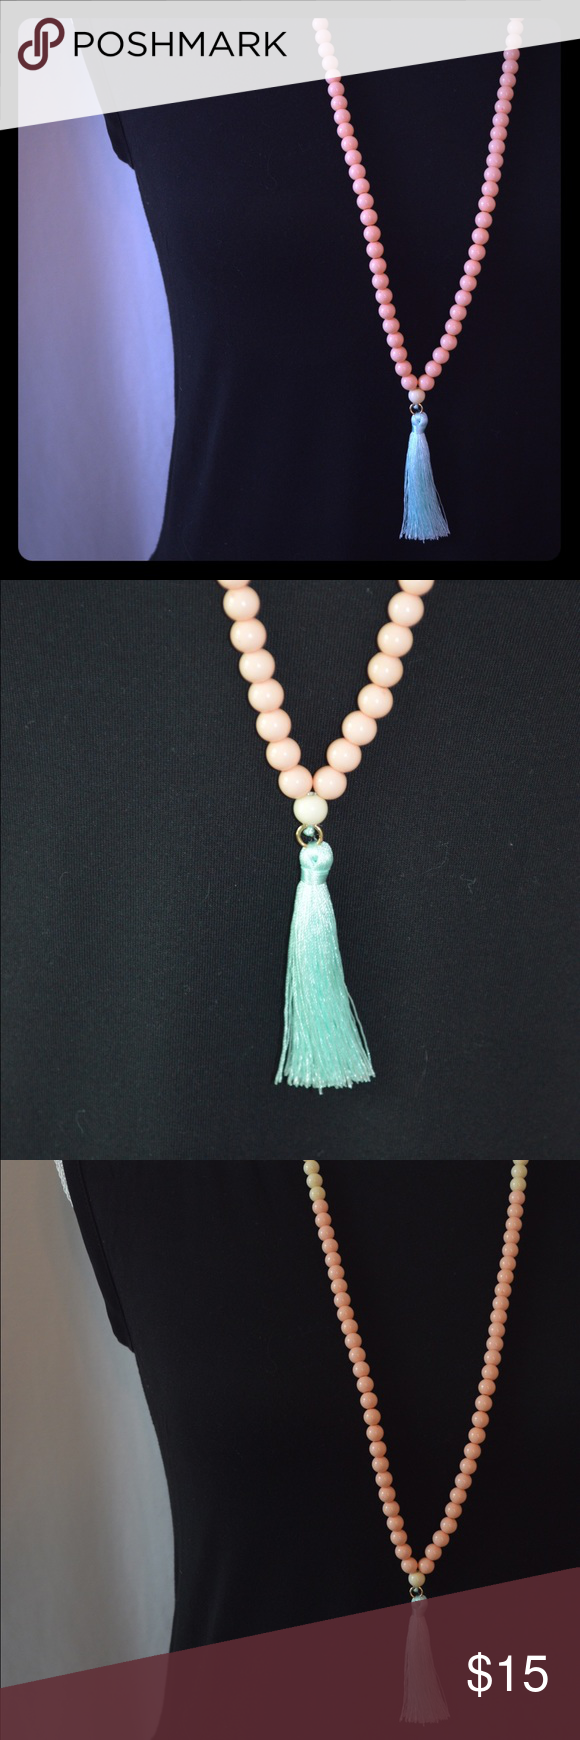 Cream & Blush Pink Beaded Necklace w/ Blue Tassel Beautiful beaded necklace with cream & blush pink beads with a light blue silk tassel at the bottom. Magnolia & Scout original - one of a kind!! Brand new, awesome quality!! ☀️ Check out my website -> www.magnoliaandscout.com ☀️ Magnolia & Scout Jewelry Necklaces